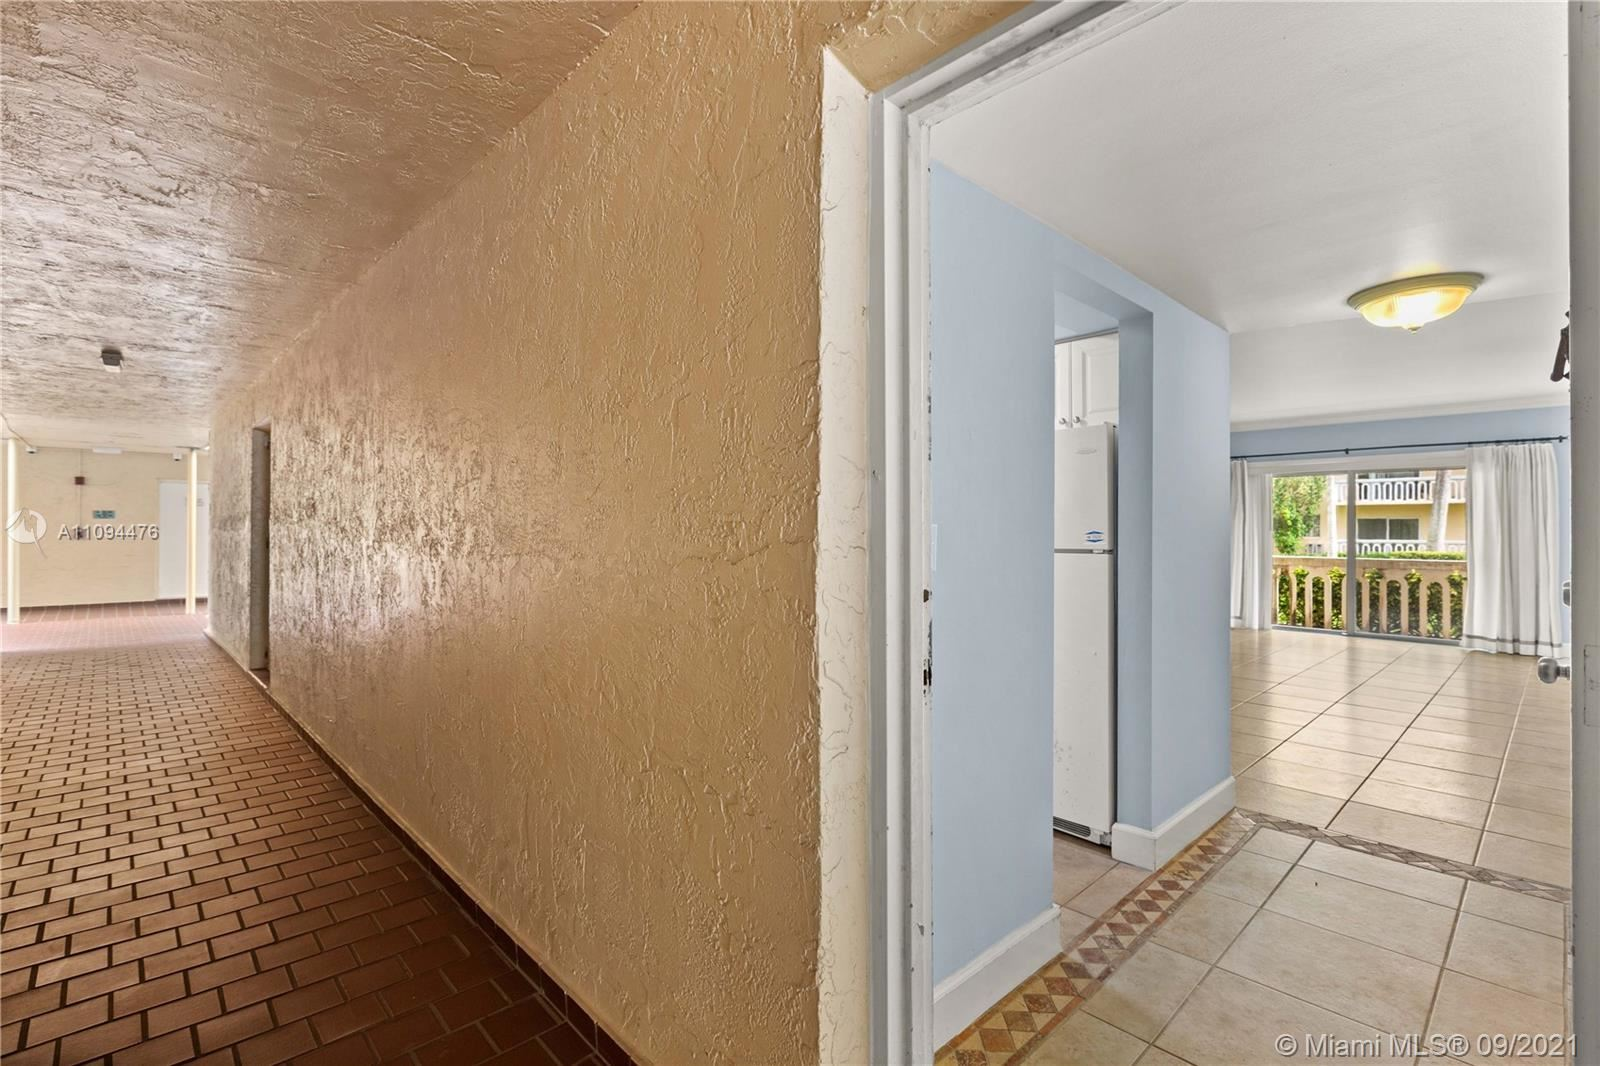 Photo of 100 Edgewater Dr #112, Coral Gables, FL 33133 (MLS # A11094476)